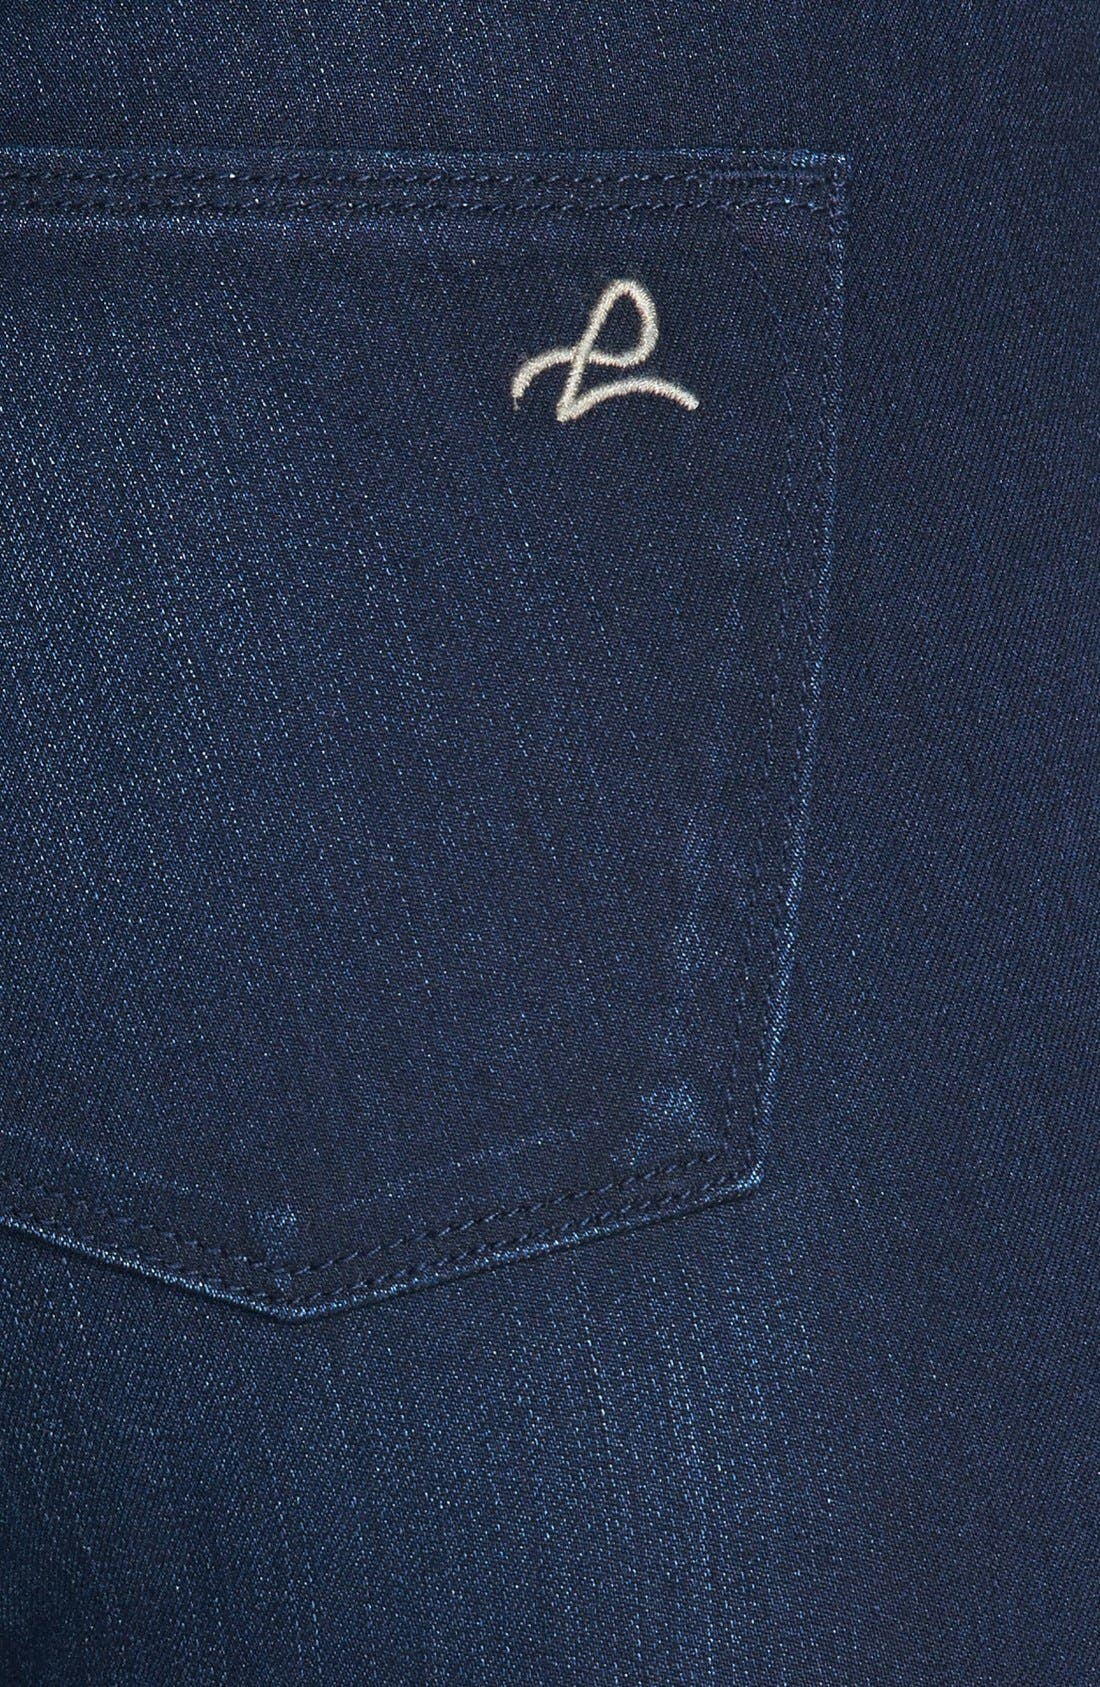 Alternate Image 3  - DL1961 'Coco' Curvy Straight Jeans (Wooster)